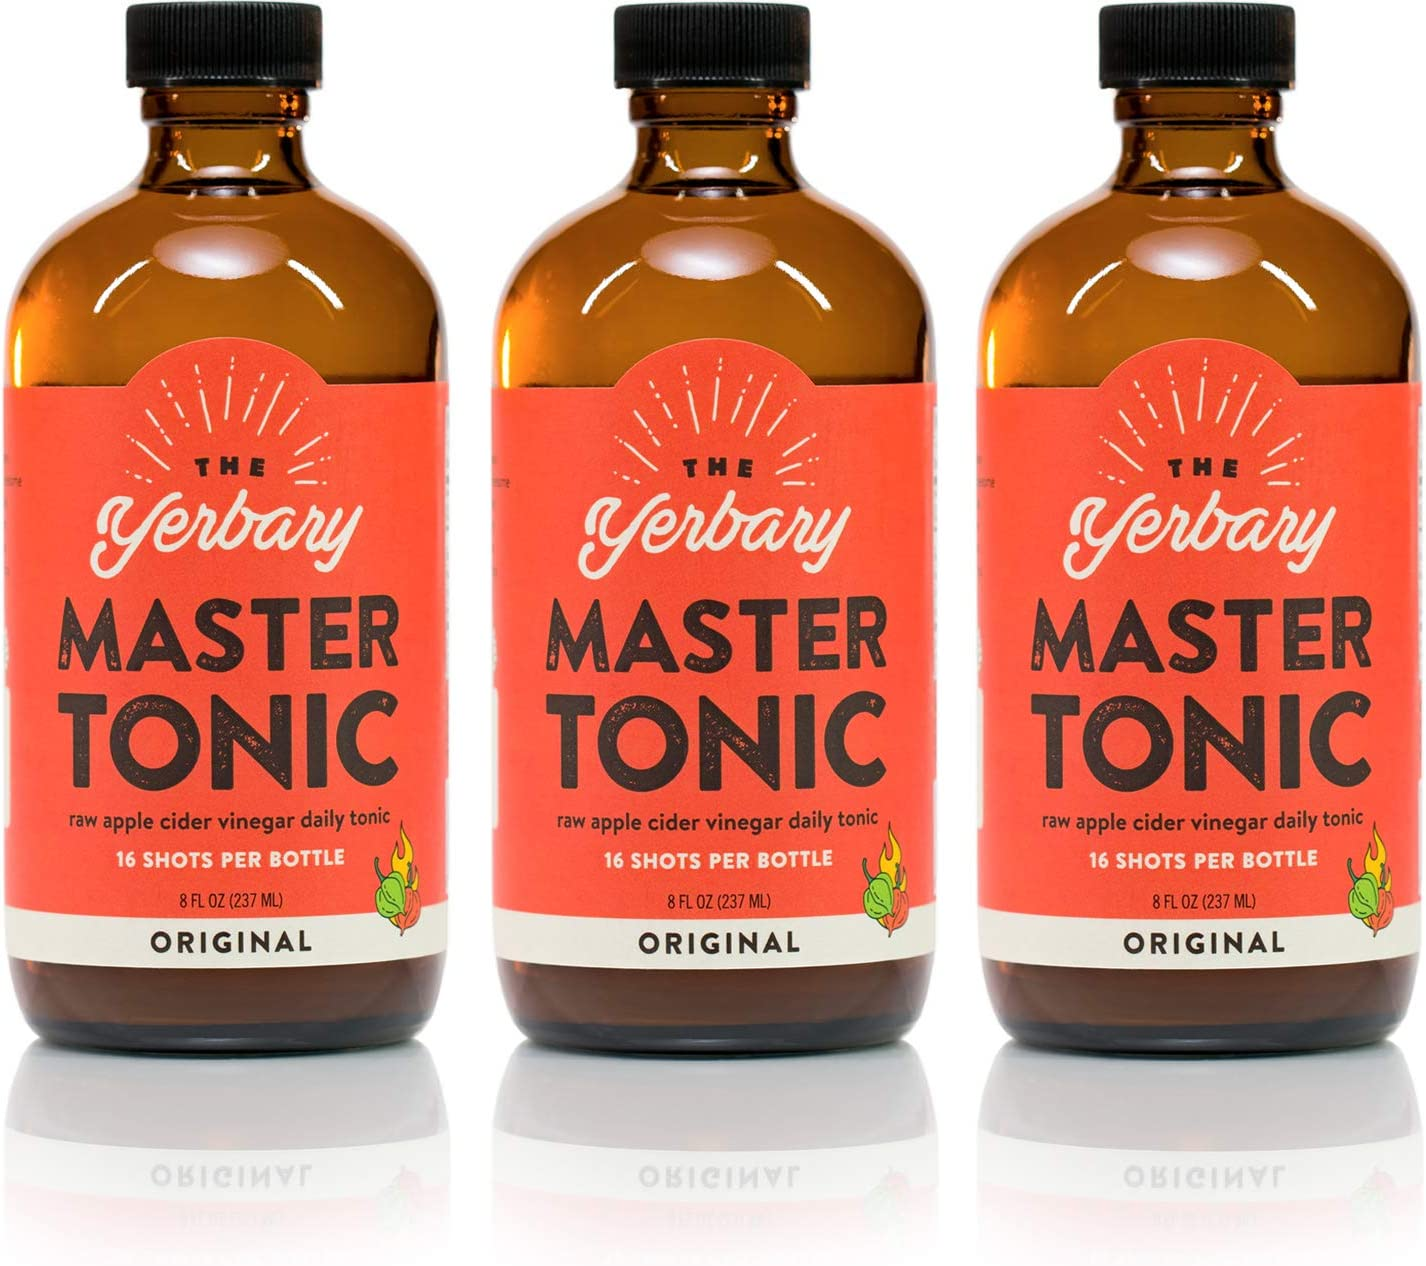 The Yerbary Master Tonic/Fire Cider 3-Pack - Original - 8 oz, 3-Pack - 16 Servings Per Bottle